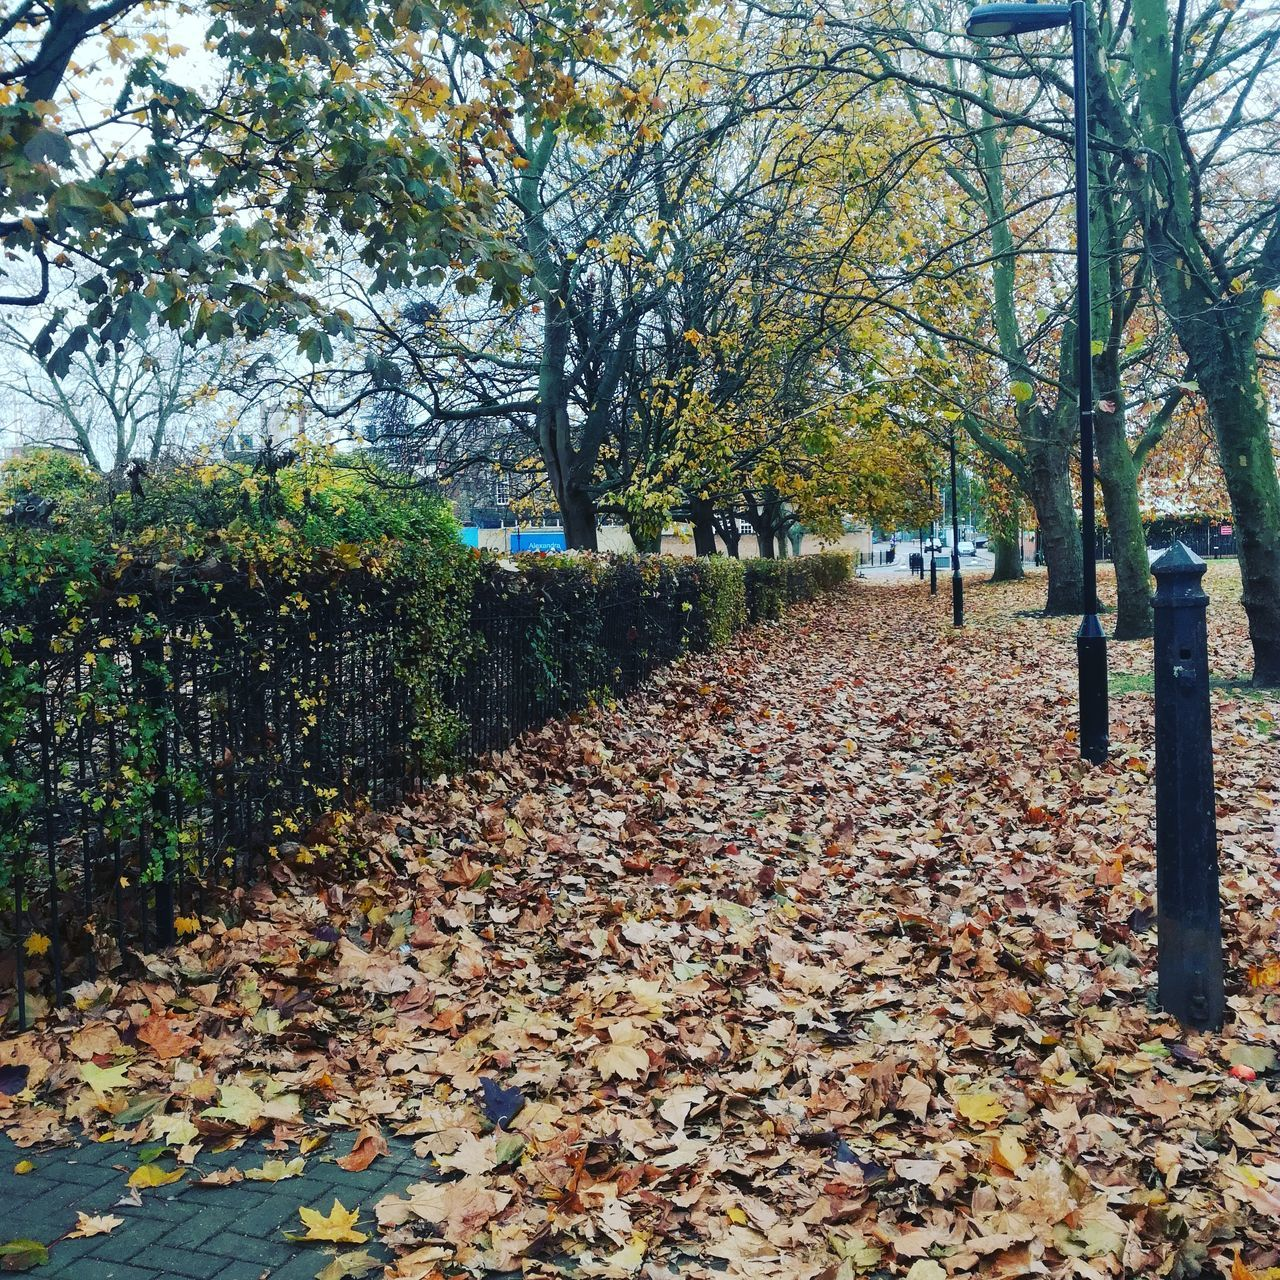 Dry Leaves Fallen In Park During Autumn